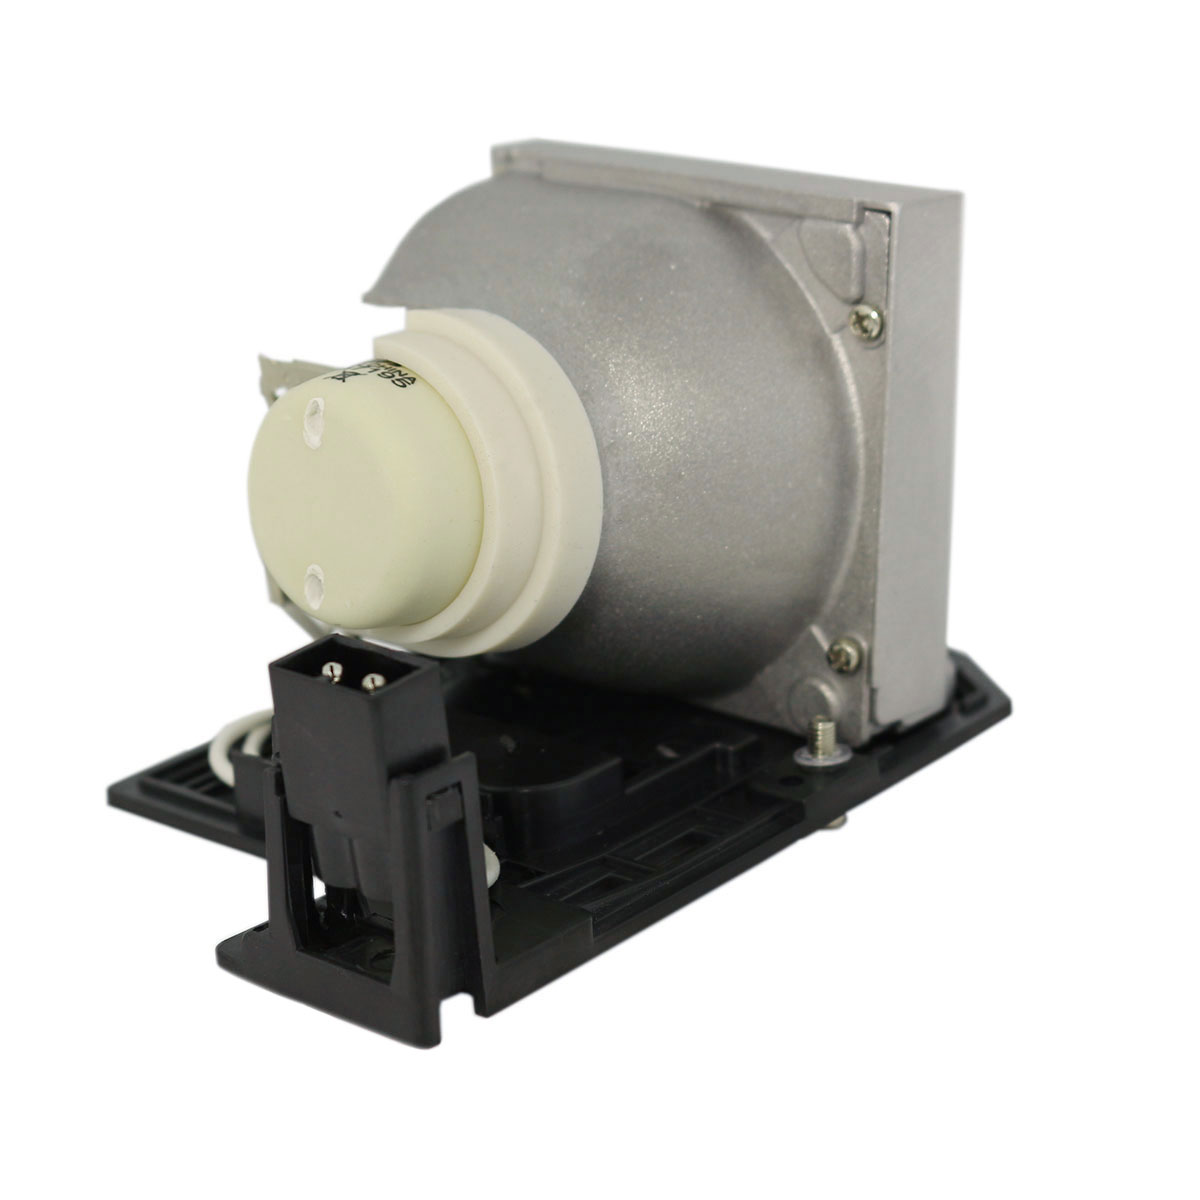 Original Philips Projector Lamp Replacement for Optoma EC300ST (Bulb Only) - image 3 of 5